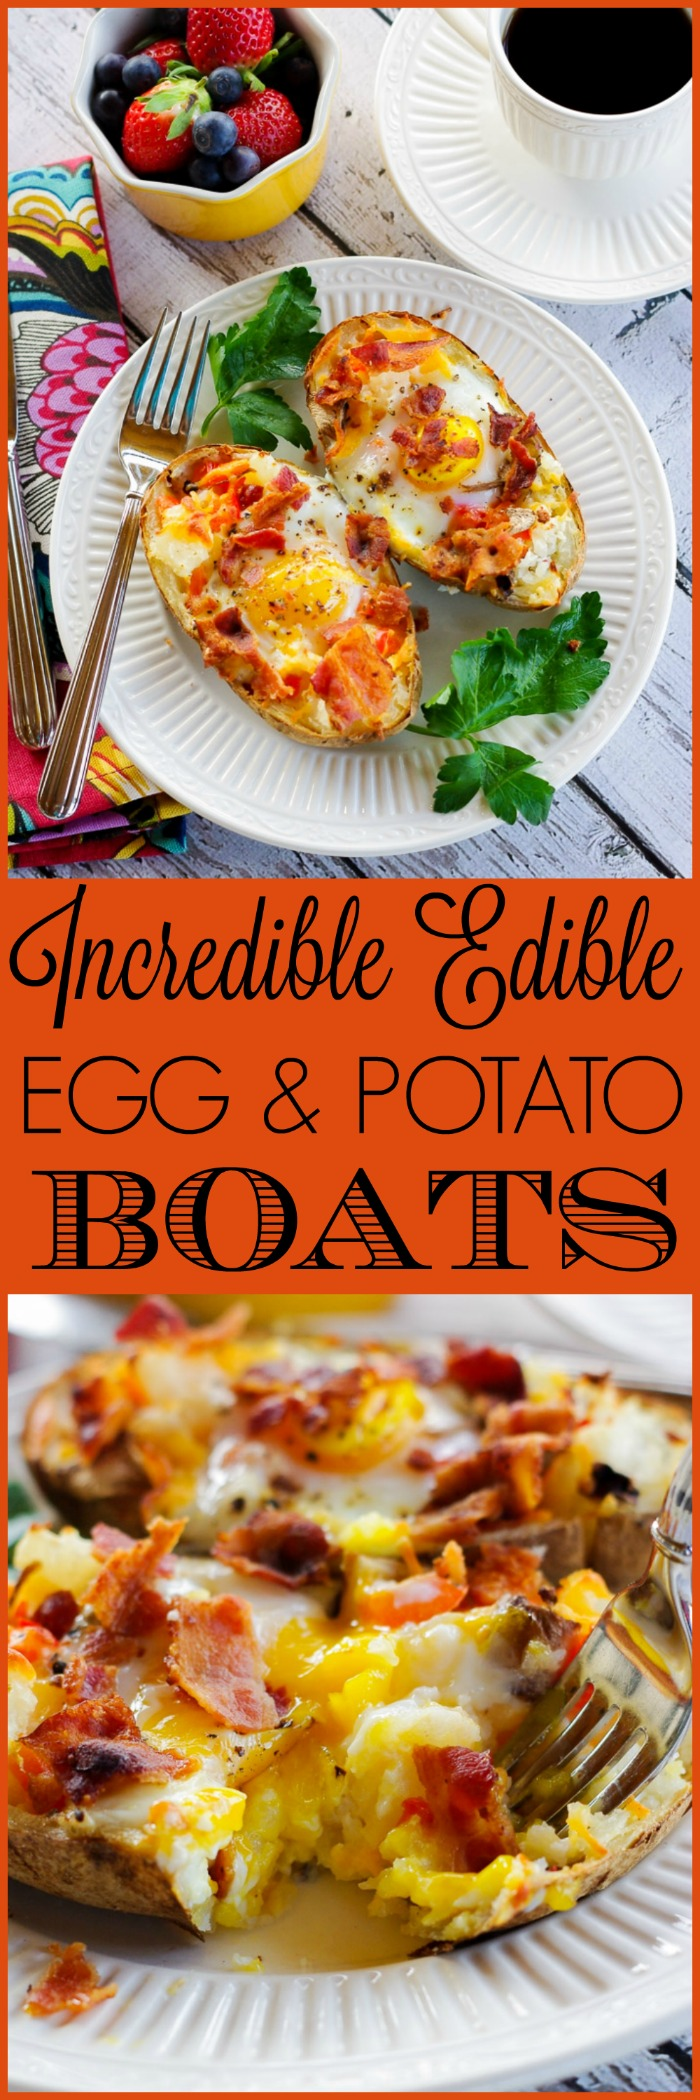 Incredible Edible Egg & Potato Boats | www.homeandplate.com | Transform last night's leftover baked potatoes into a delicious breakfast with these cheesy Incredible Edible Egg & Potato Boats.